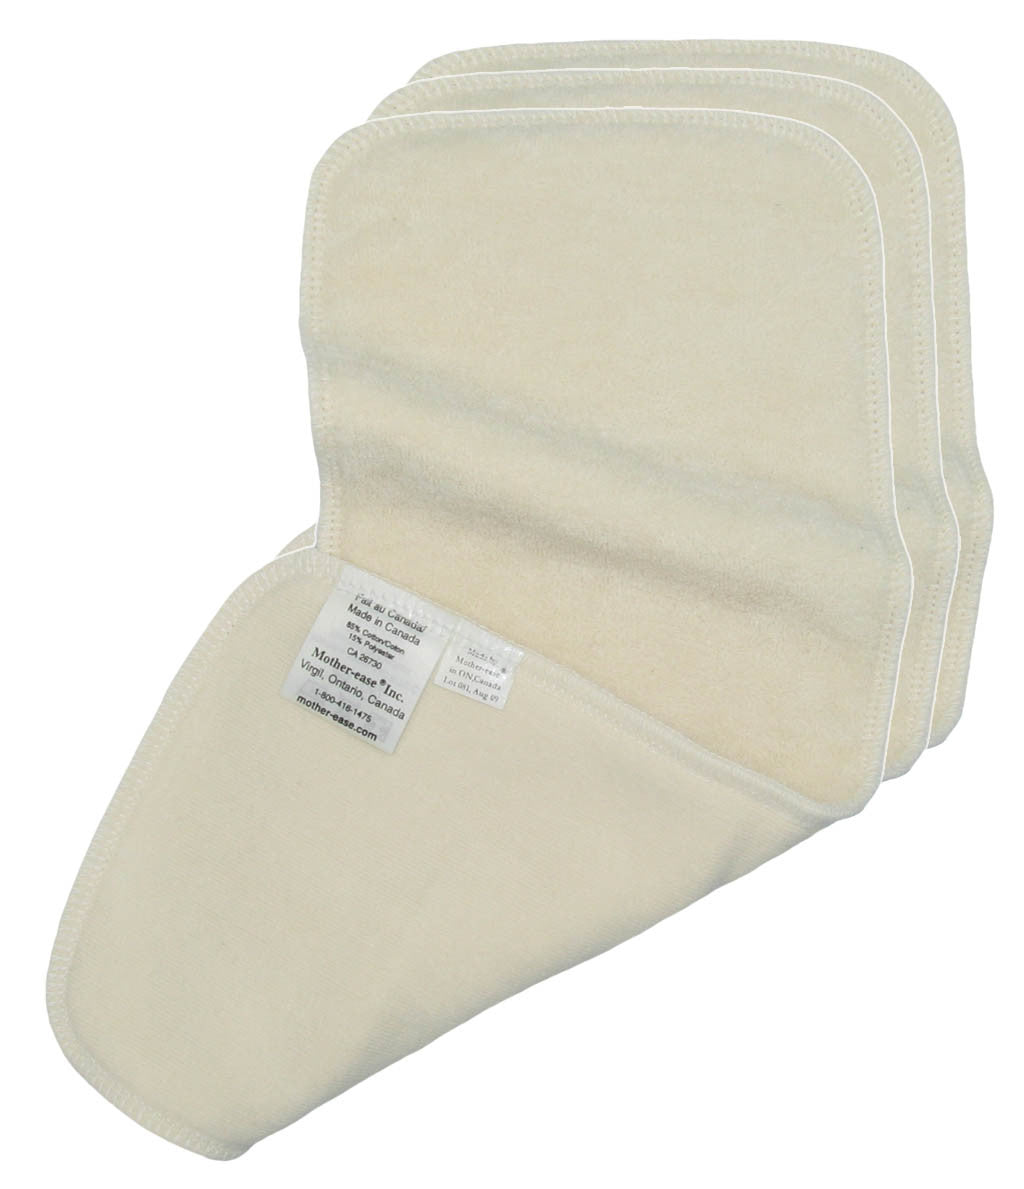 Sandy's Absorbent Liner - Unbleached Cotton